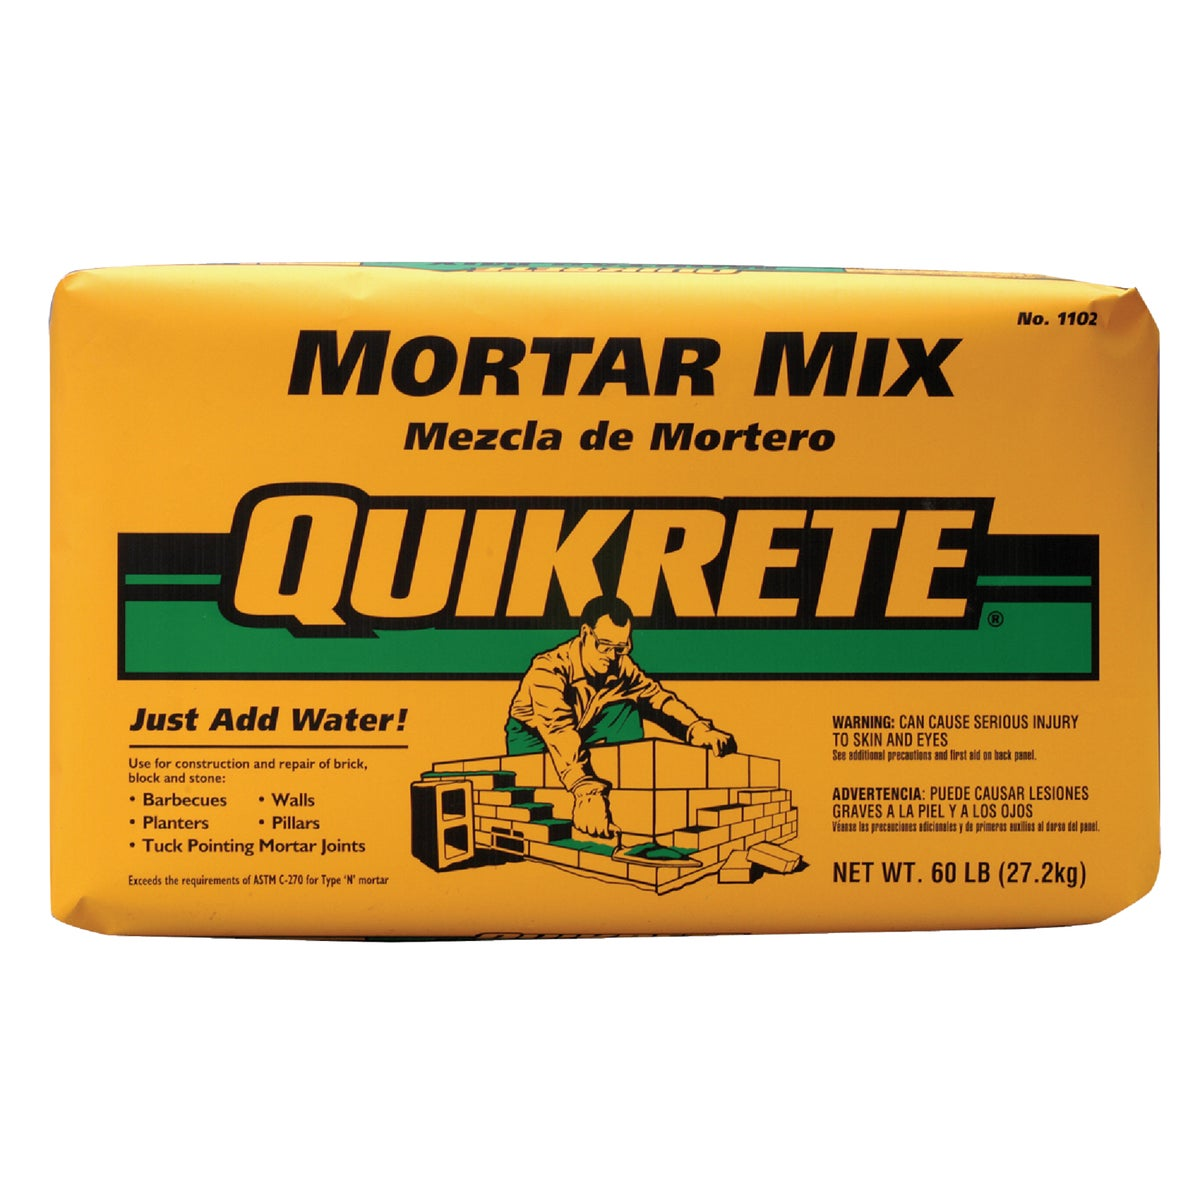 60LB MORTAR MIX - 110260 by Quikrete Co